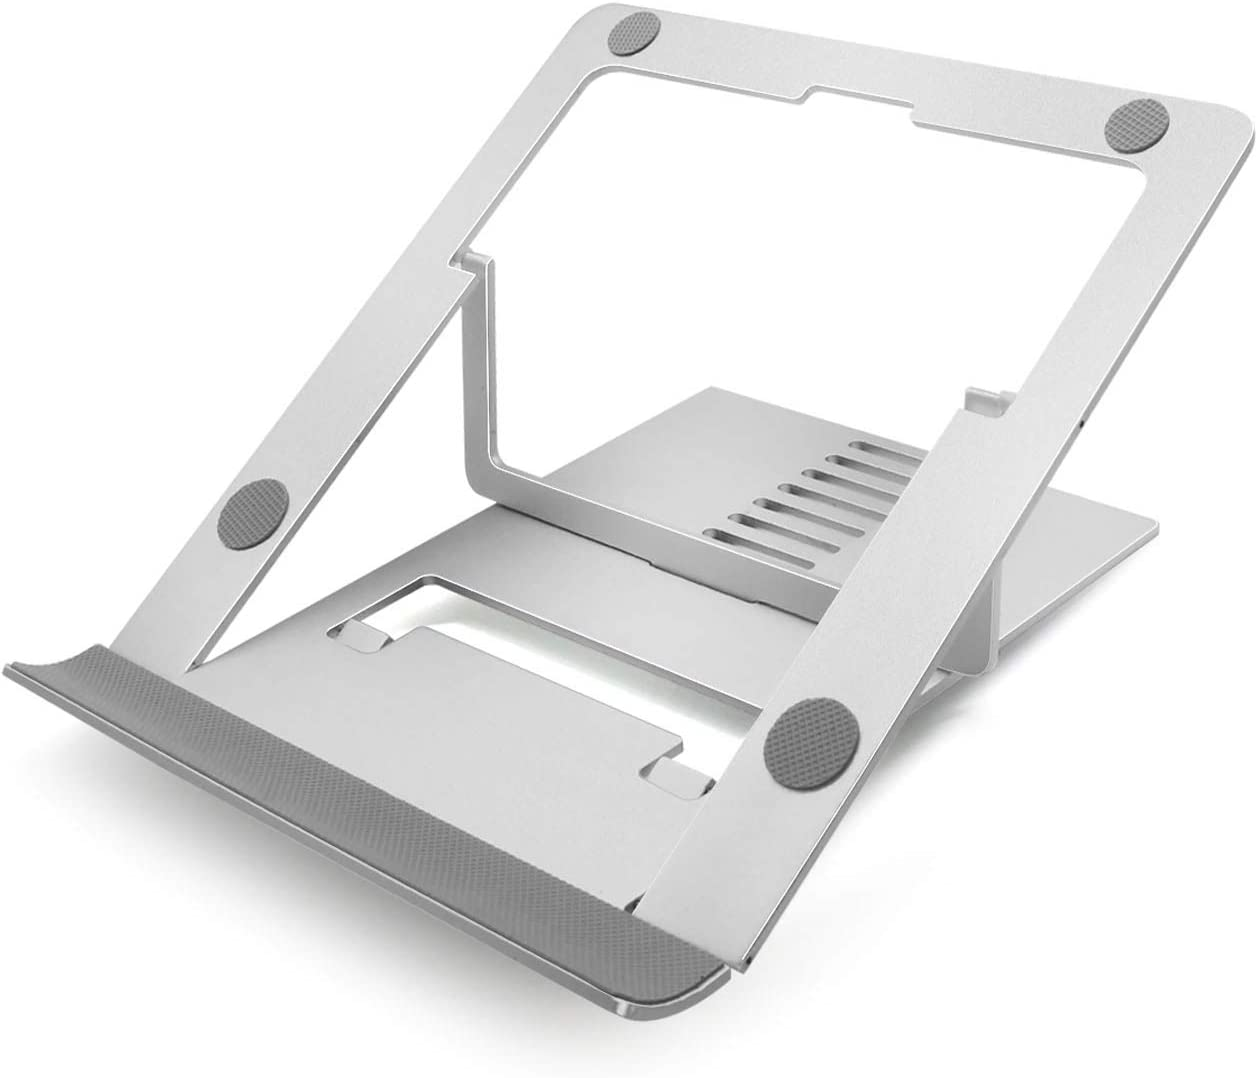 Laptop Stand, Ergonomic Portable Aluminum Laptop Mount Computer Stand, YuanFan Collapsible Laptop Riser Notebook Holder Stand for More 10-17